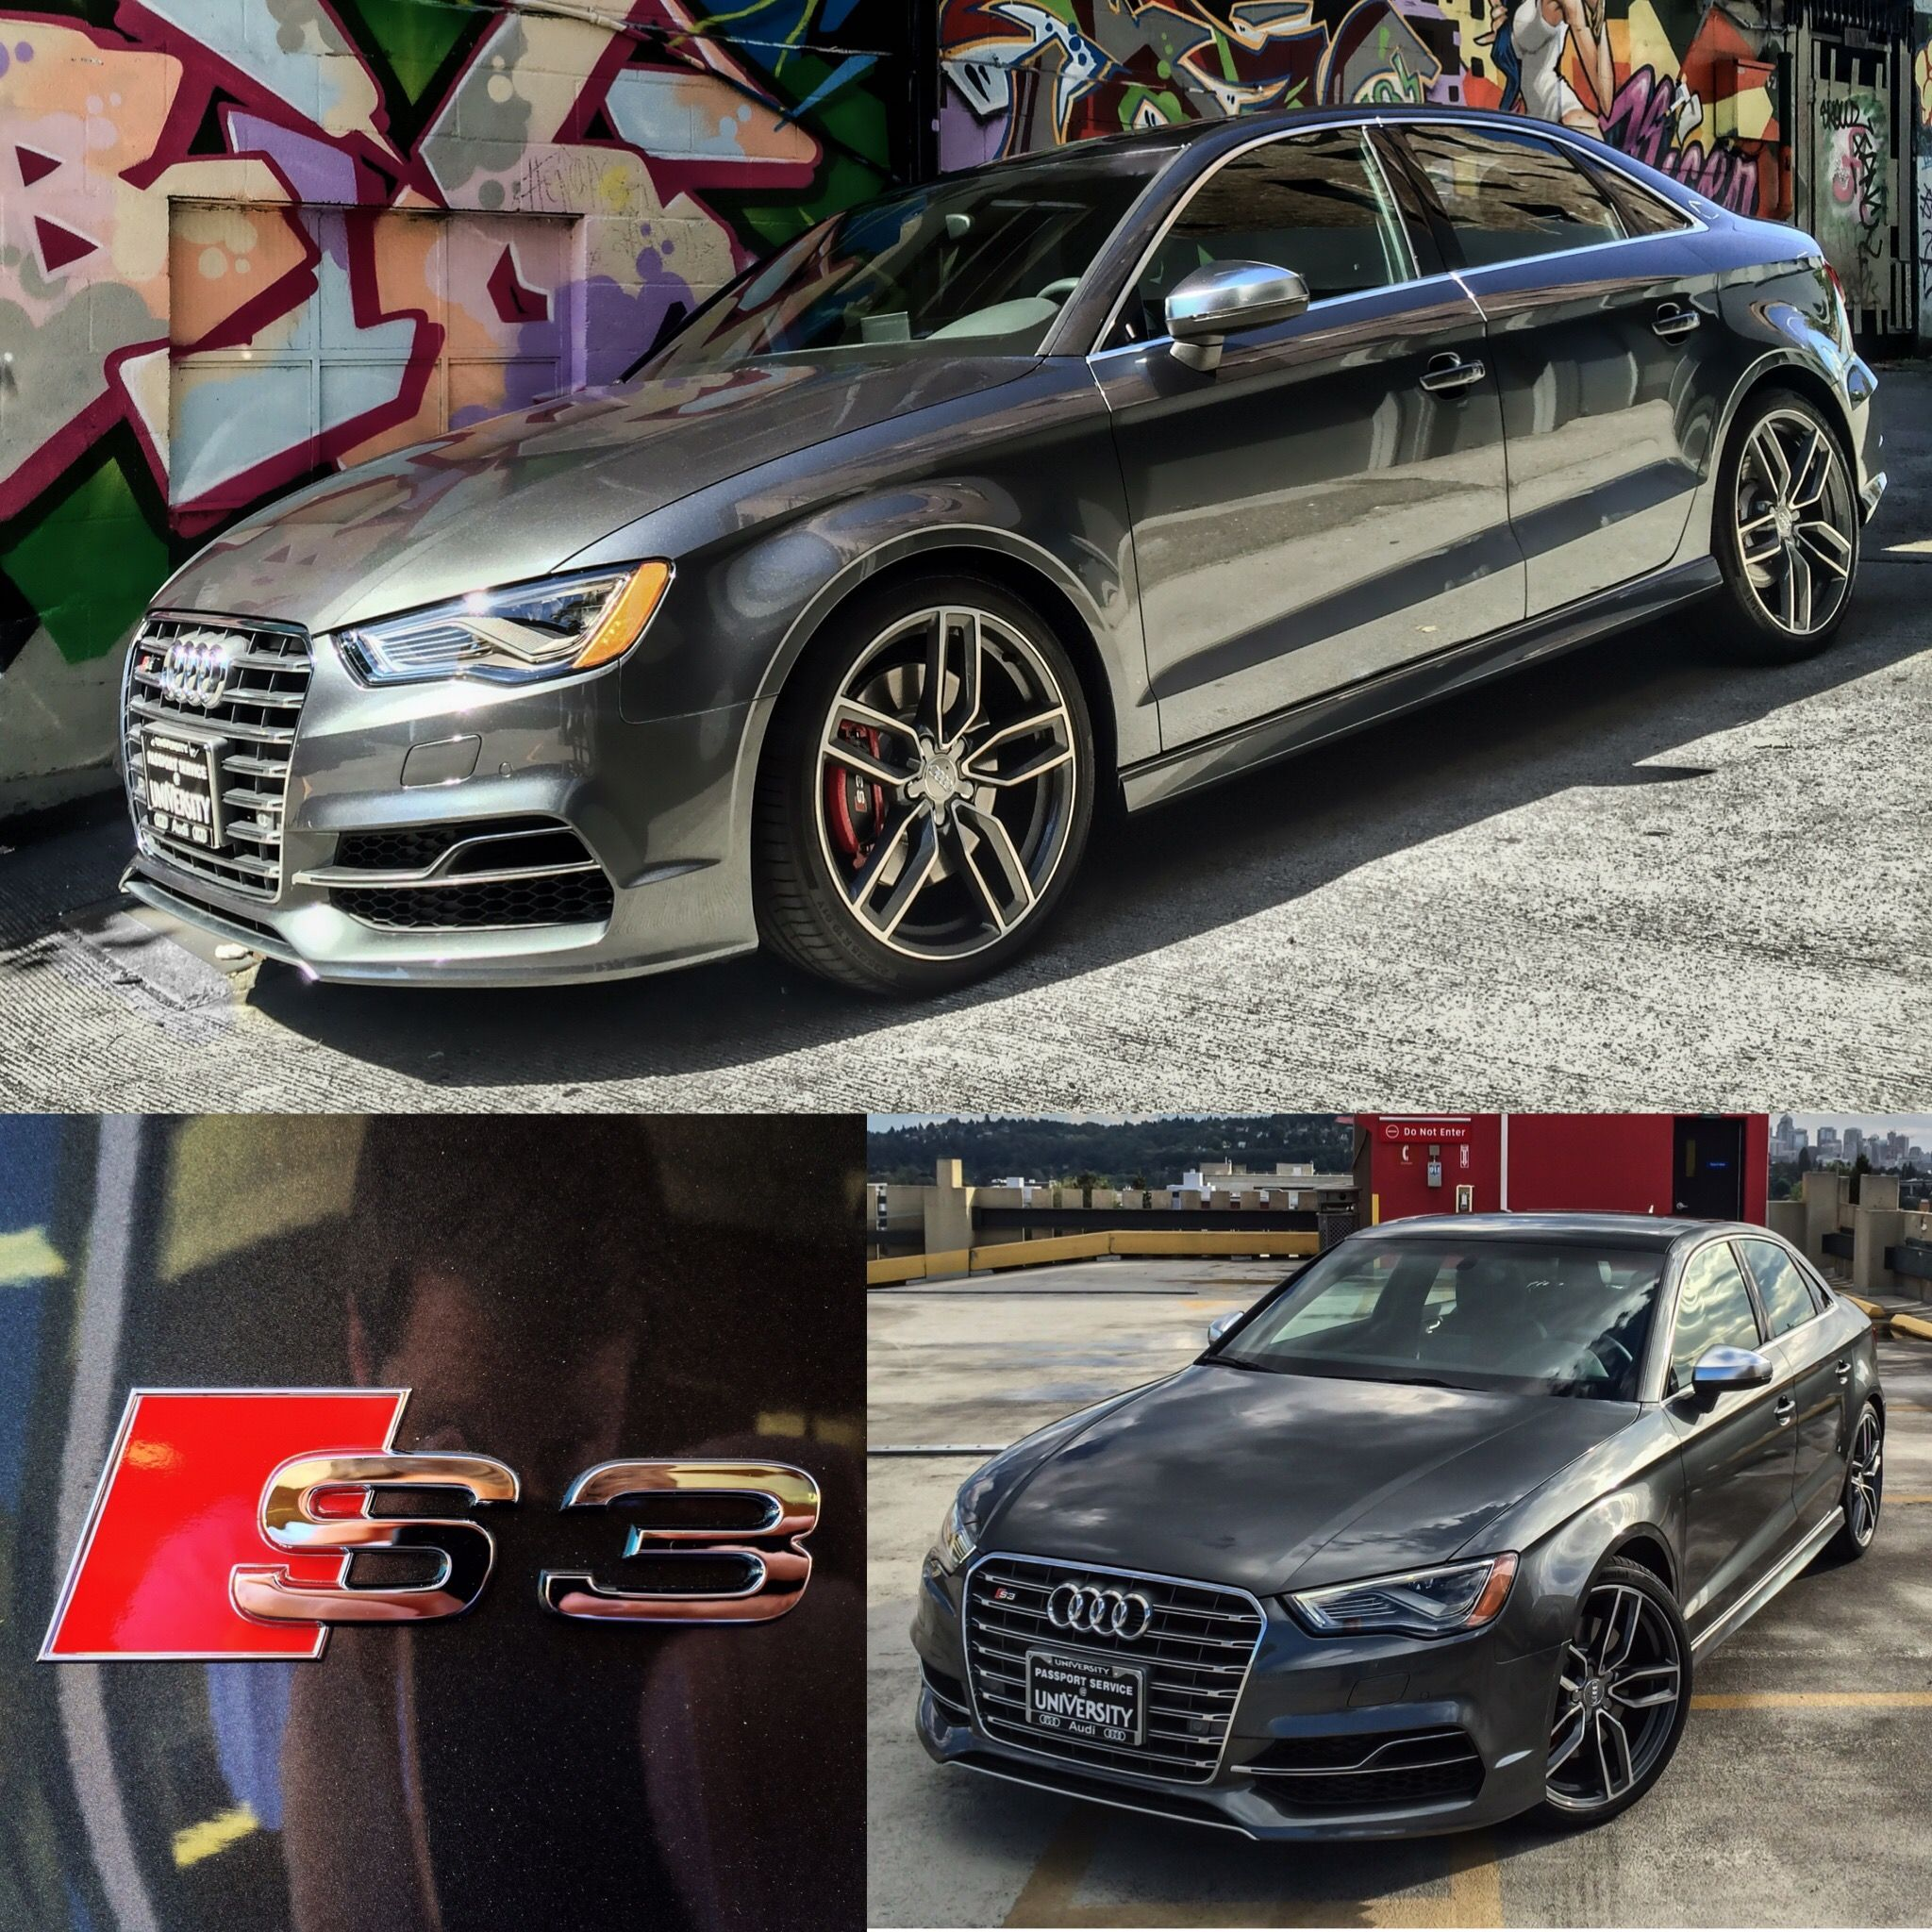 TBT Daytona Gray Launch Edition Audi S Seattle AudiSeattle - Audi seattle